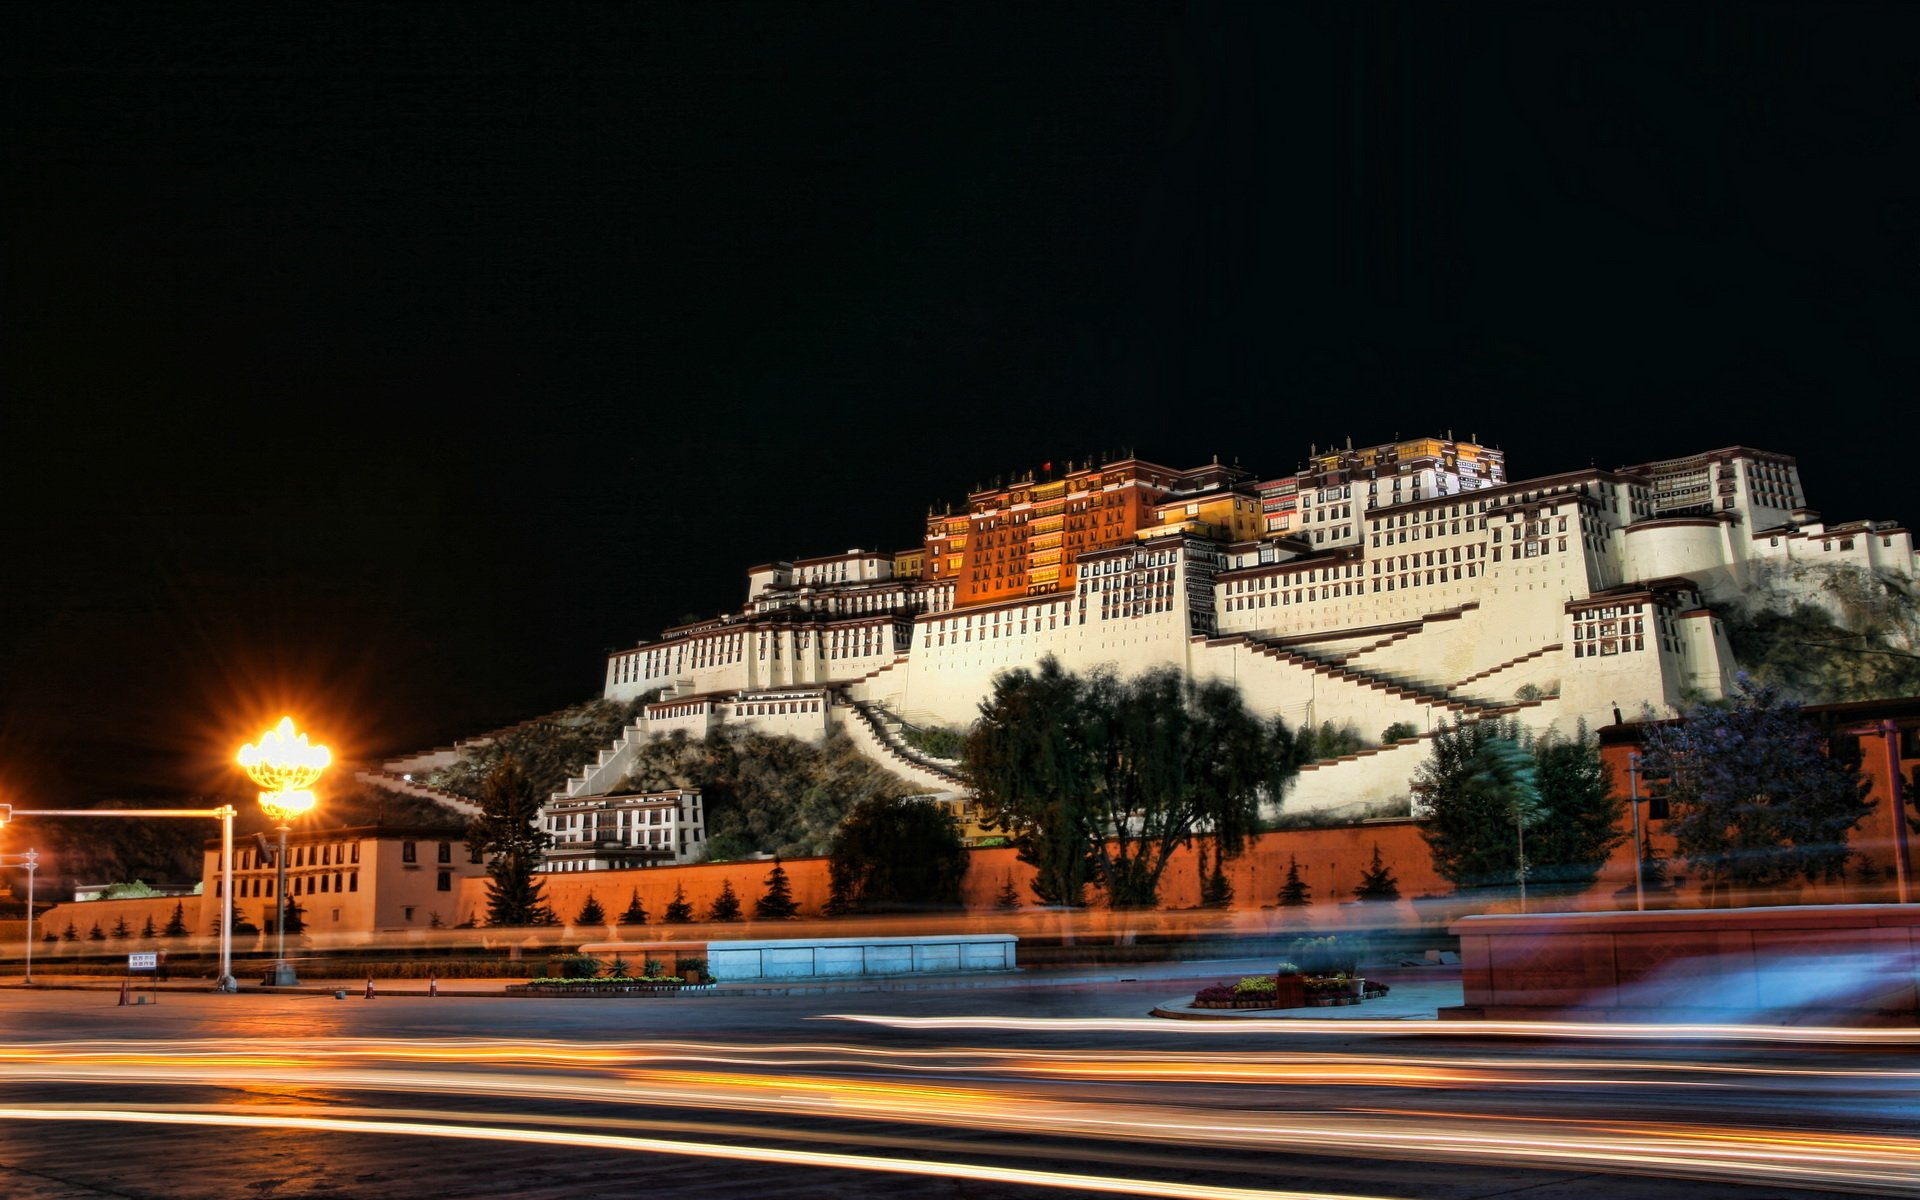 Man Made - Potala Palace  Wallpaper